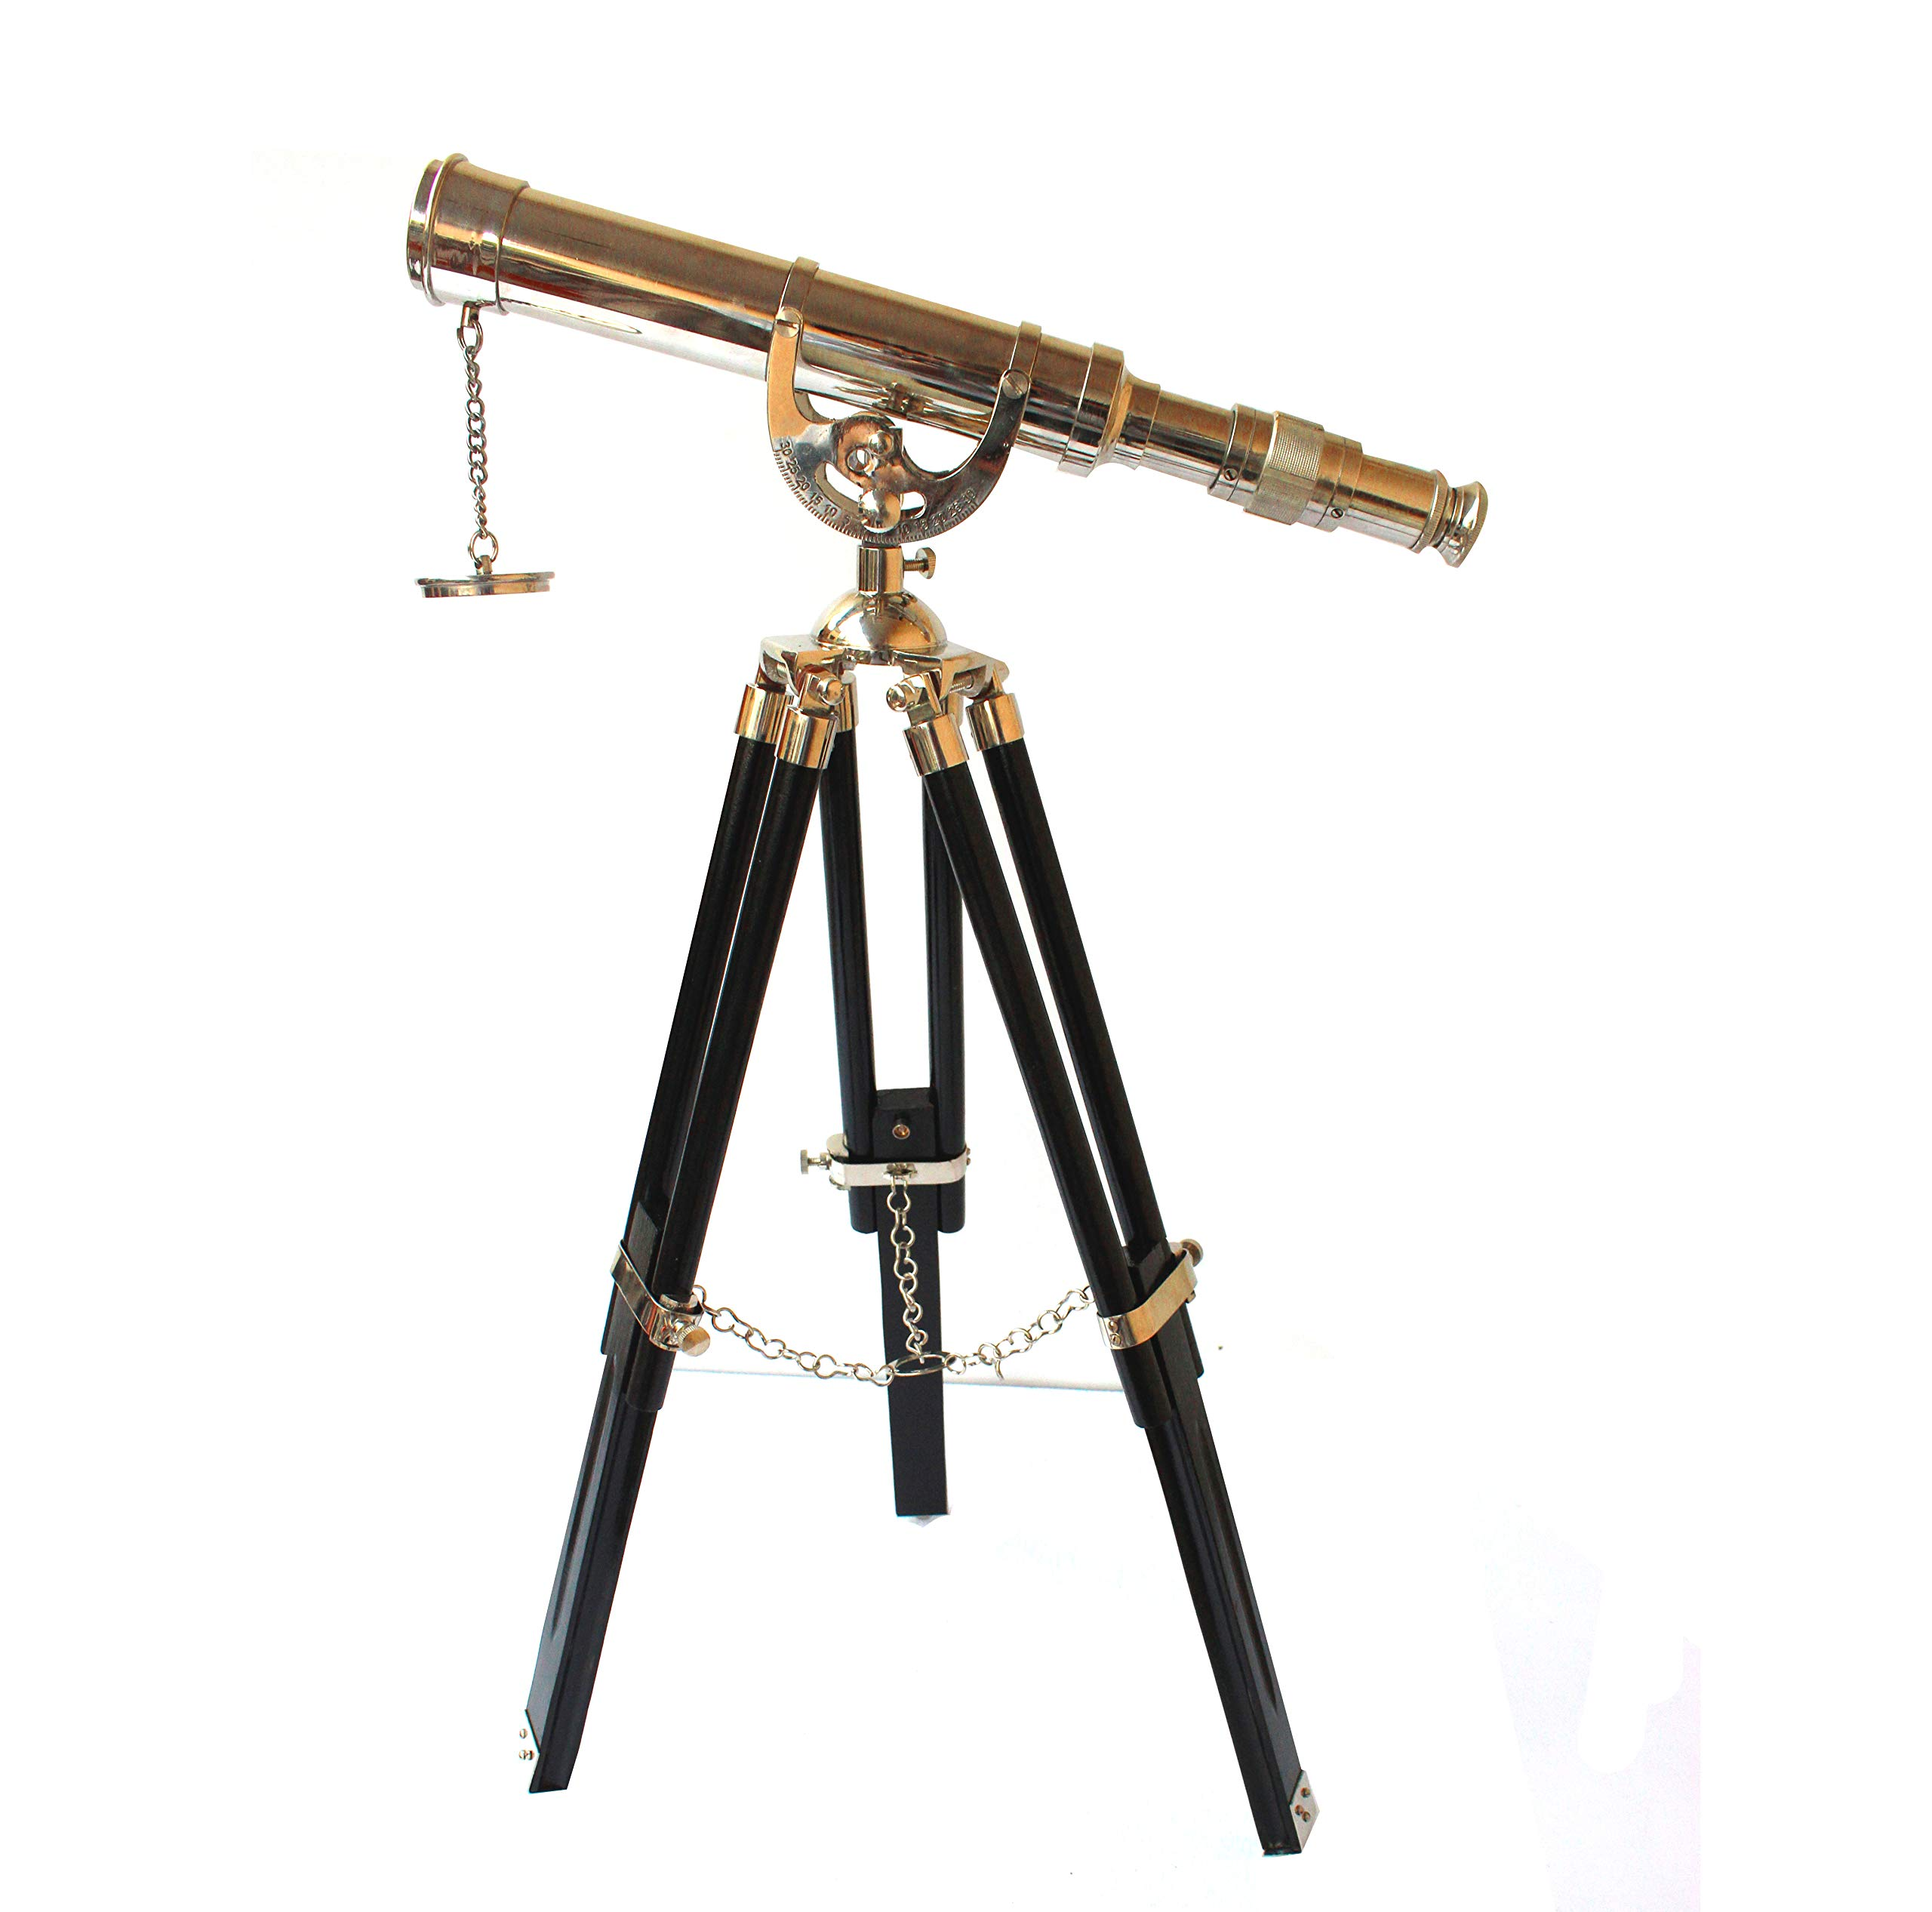 Vintage Tripod Reflecting Telescope Antique Dutch Brass Nautical Unique Eyepiece Harbour Master Stand by Collectibles Buy